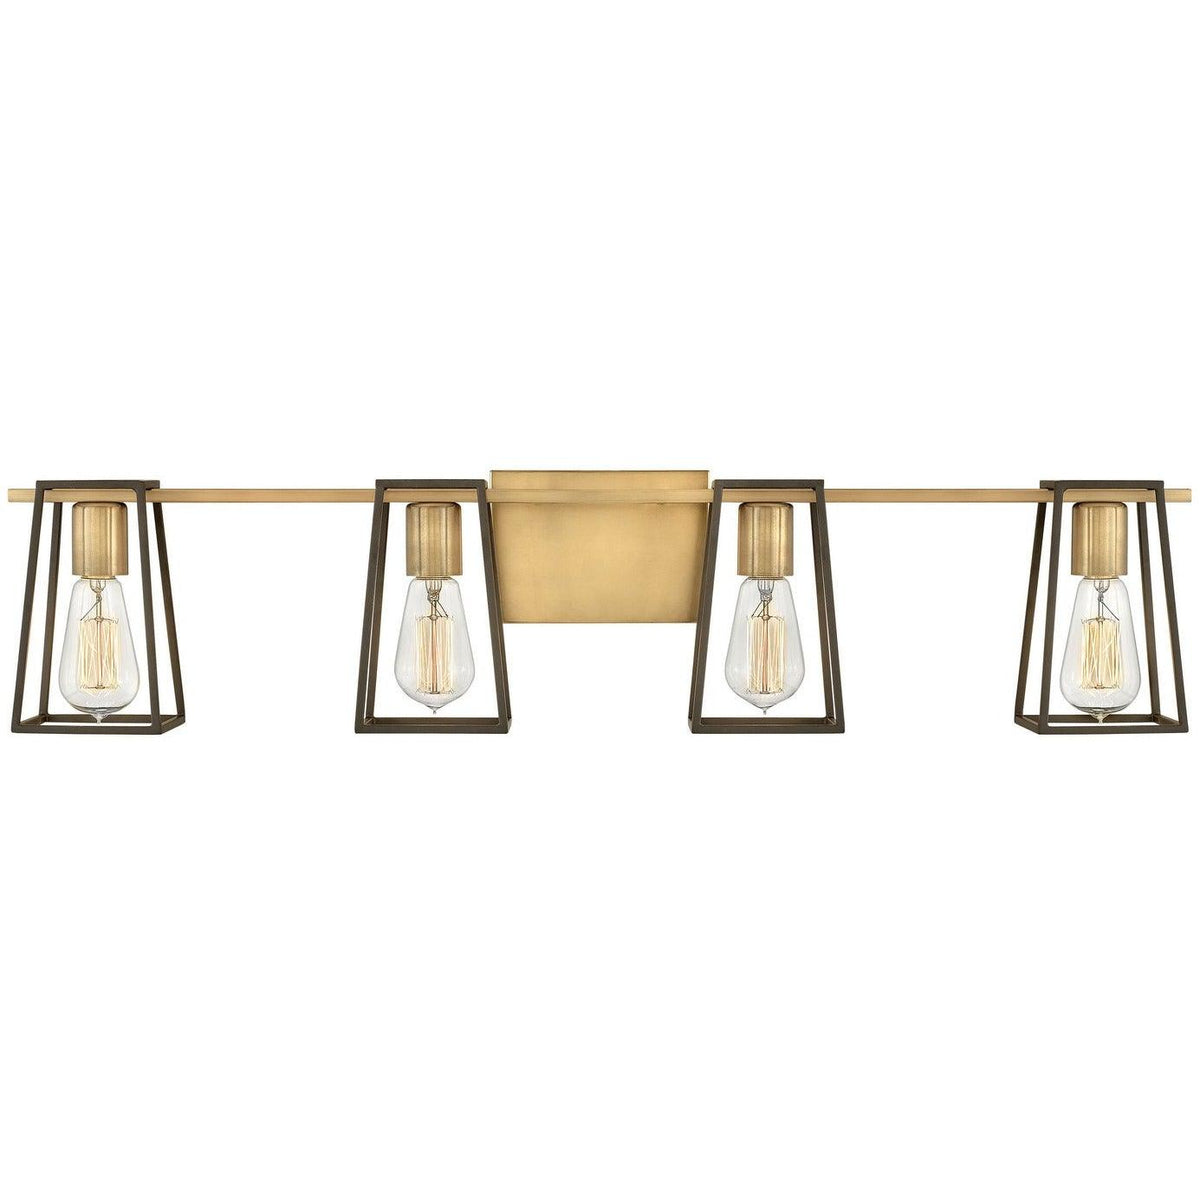 Hinkley Canada - 5164HB - Four Light Bath - Filmore - Heritage Brass